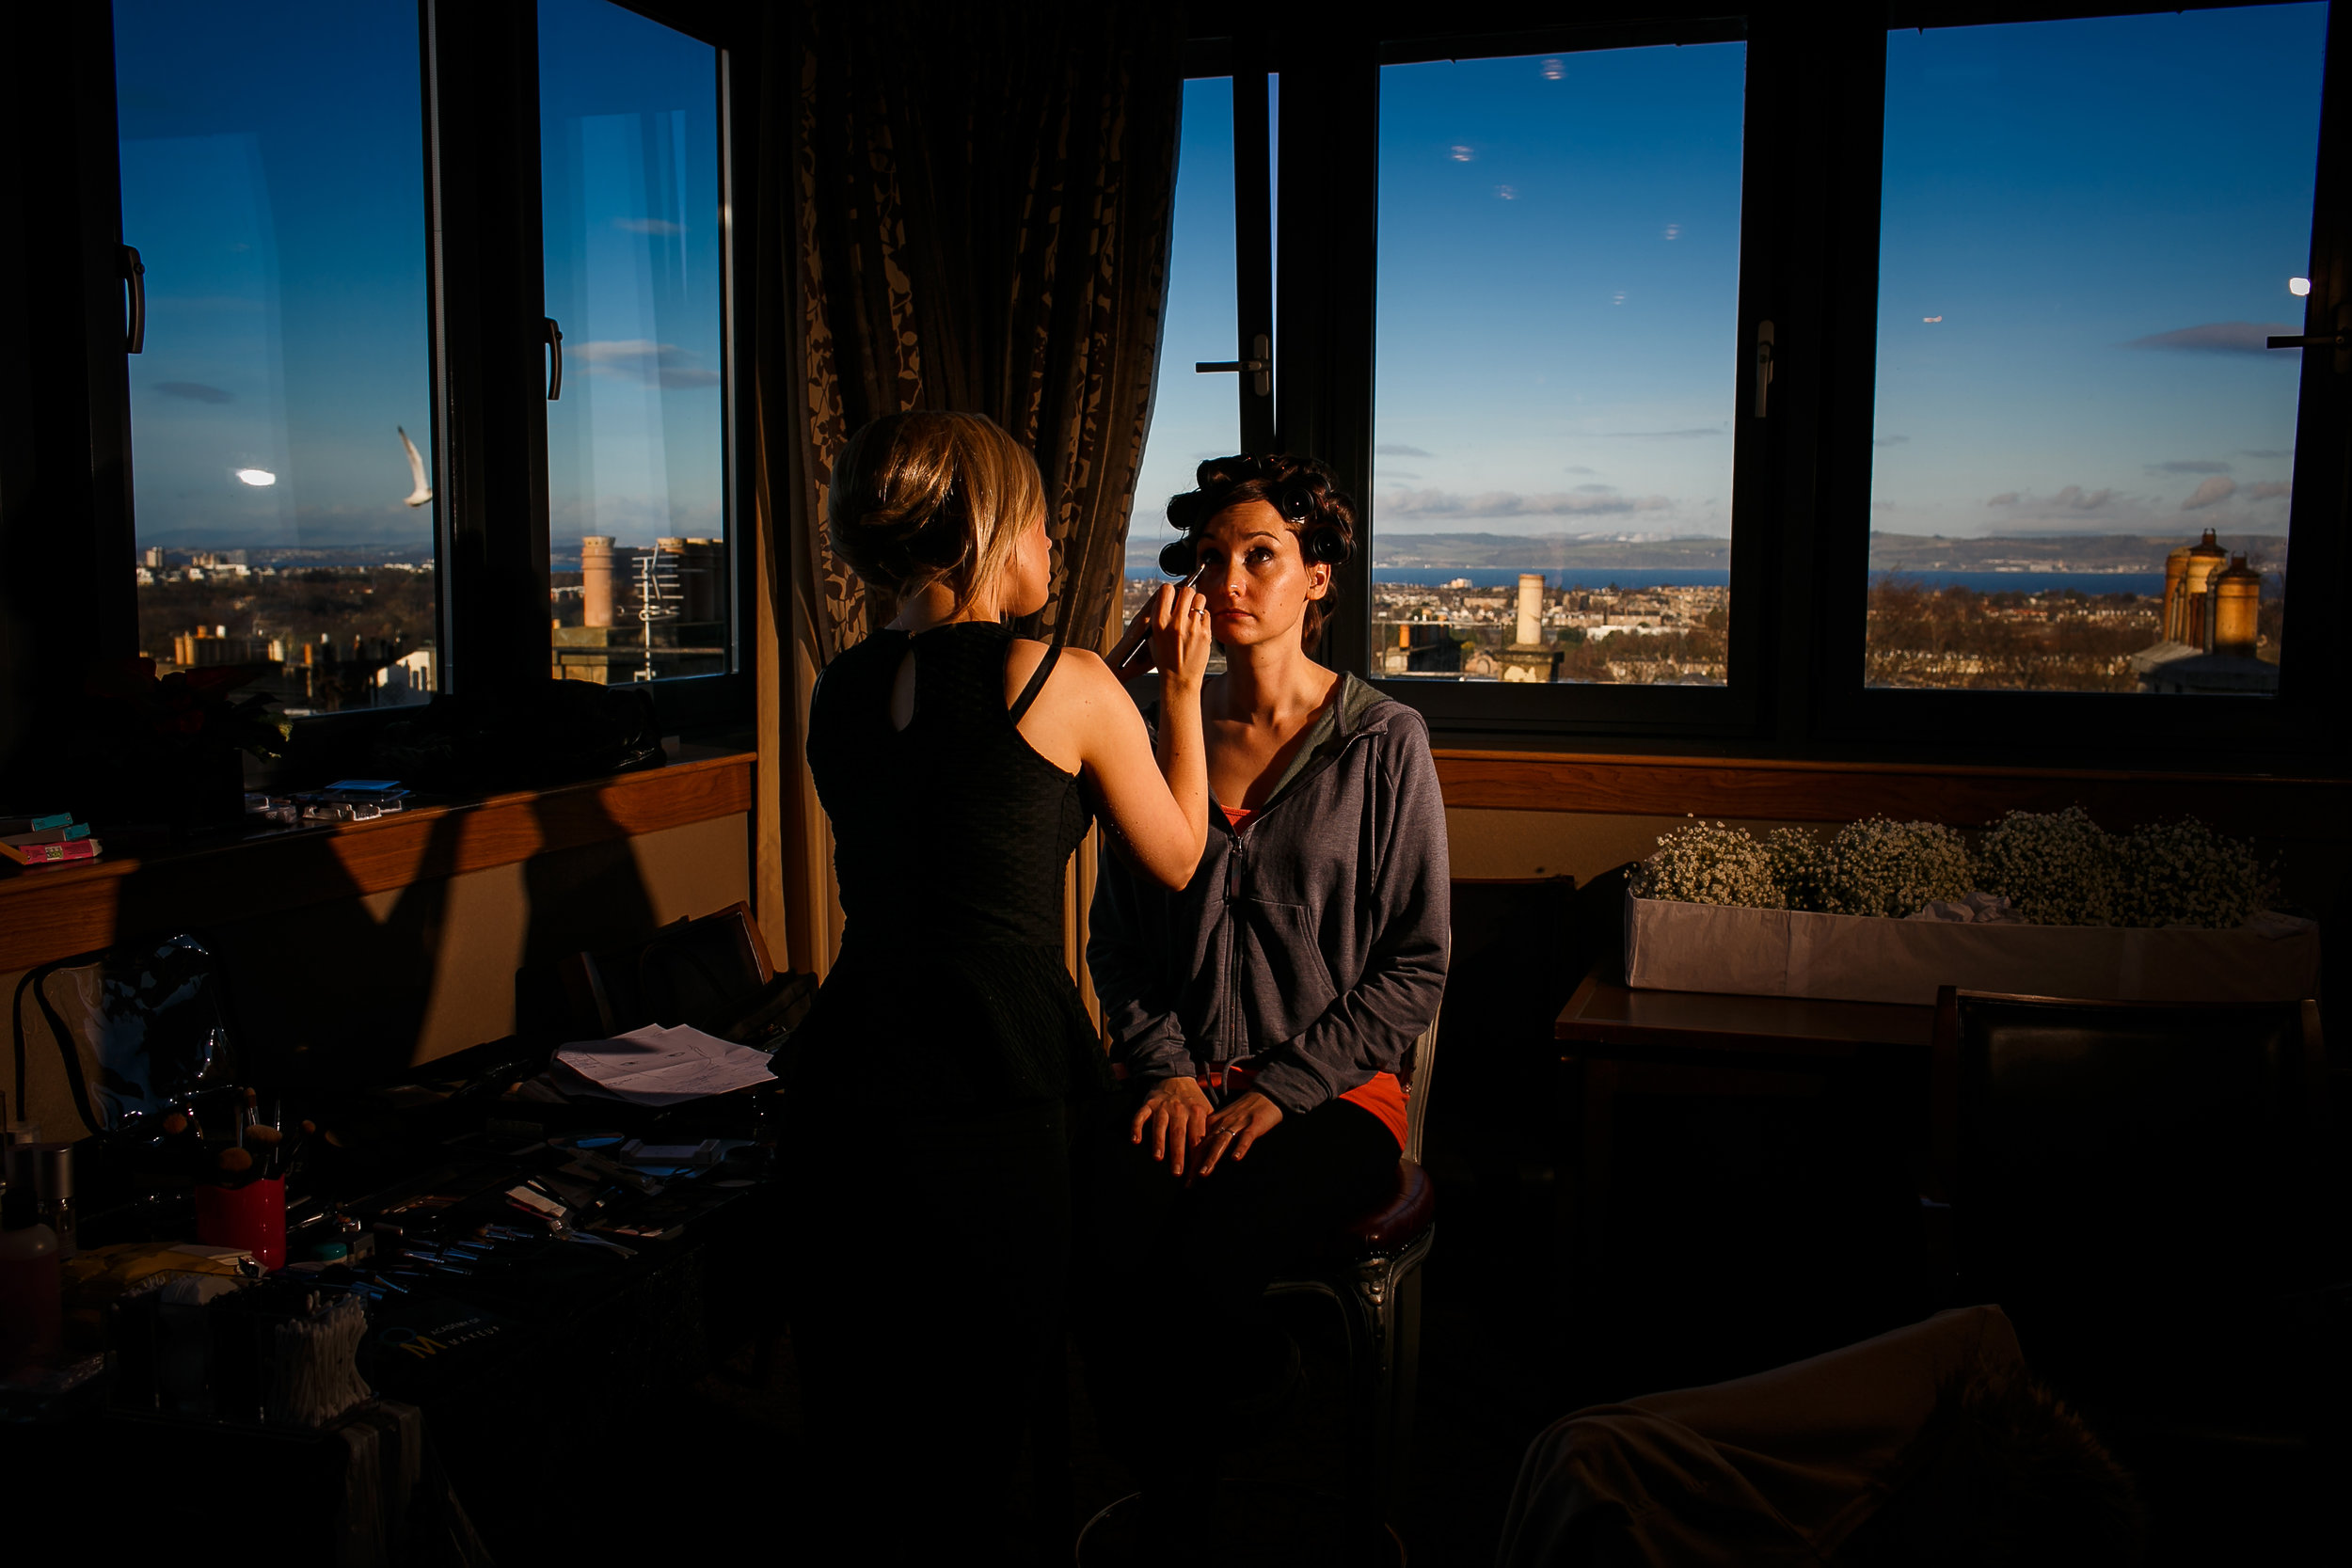 george hotel makeup edinburgh.jpg